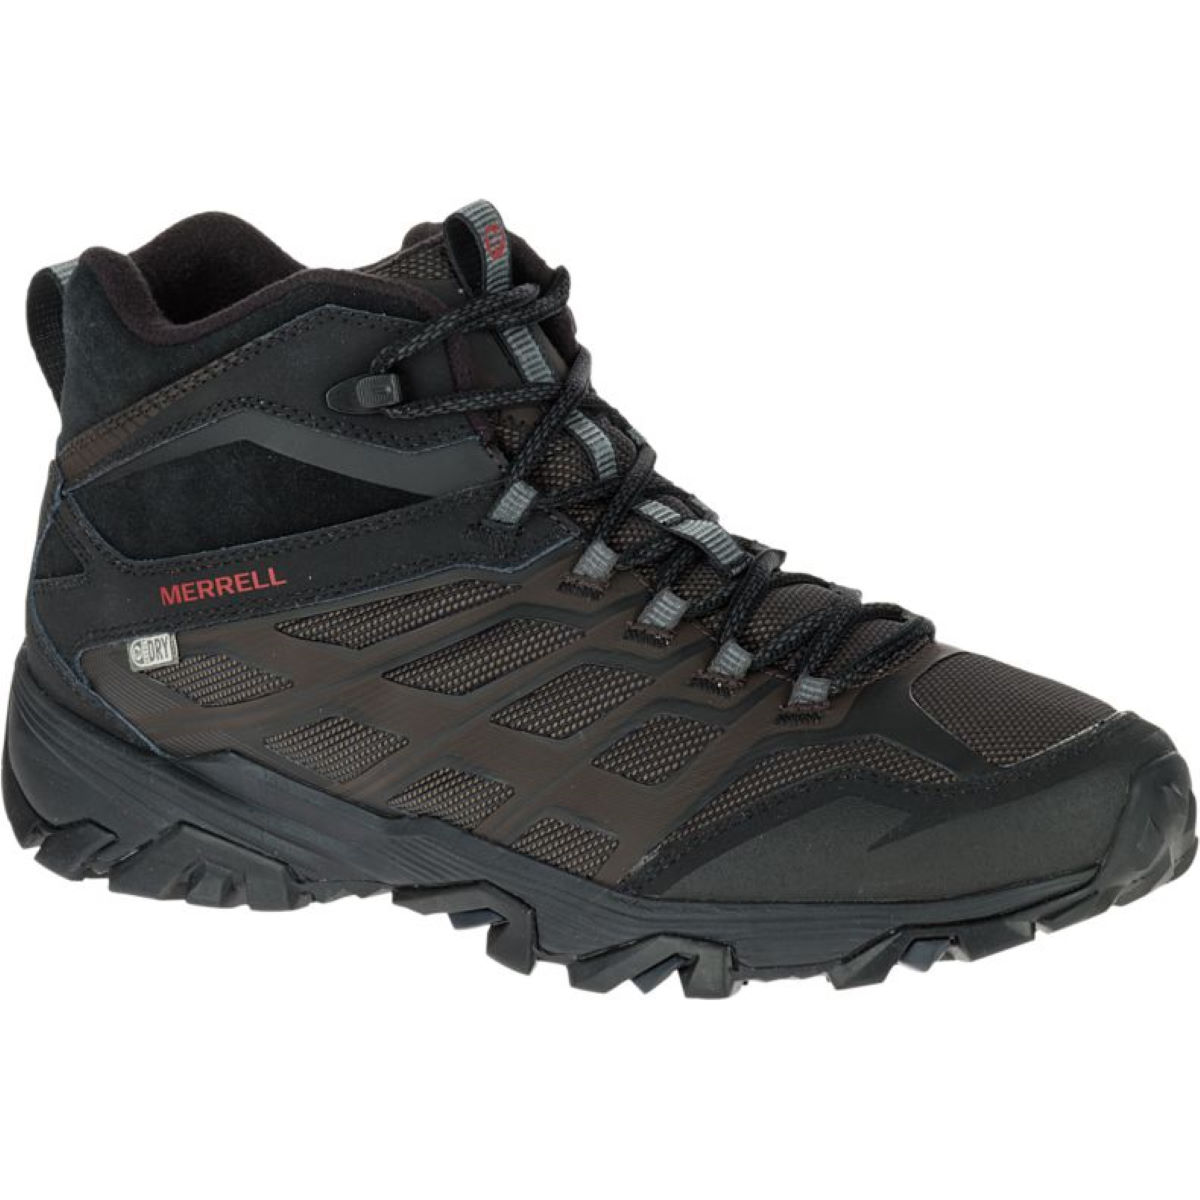 Chaussures Merrell MOAB FST ICE+ THERMO - 10.5 BLACK Chaussures